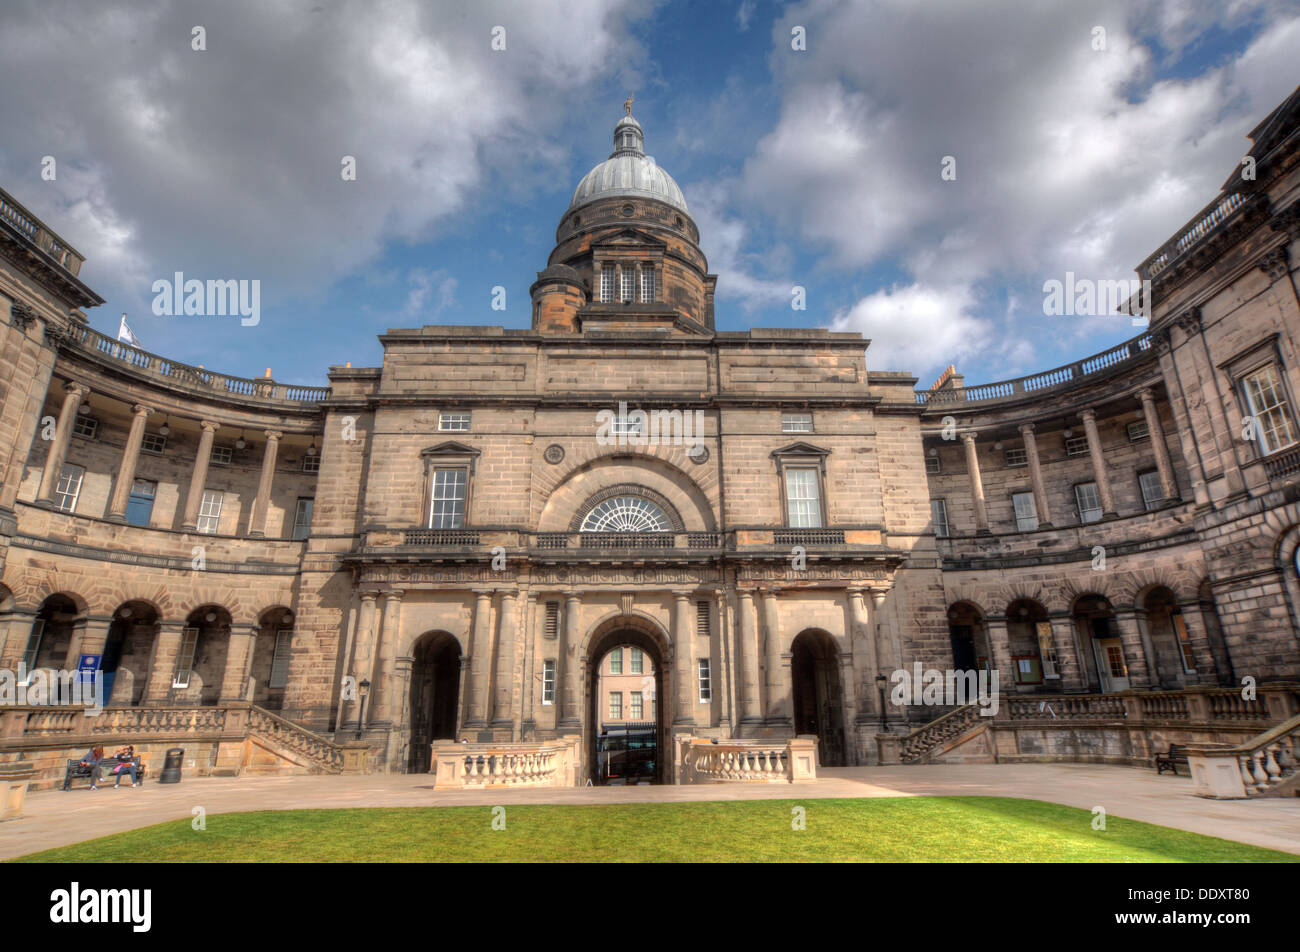 Scotland,UK,Scottish,uni,school,of,learning,building,architecture,Victorian,old,town,capital,city,cities,world,heritage,site,grade,II,grade2,listed,public,research,summer,2013,grass,Old,College,South,Bridge,Edinburgh,Midlothian,EH8,9YL,EH89YL,wide,view,shot,lens,tourist,tourism,attraction,tower,gotonysmith,oldtown,Edinburg,icon,iconic,Scots,Scotish,Scottish,Scotland,problem,with,Uni,stone,history,historic,tourist,tourism,tour,travel,study,student,Buy Pictures of,Buy Images Of,problem with,Edinburgh University,Edinburgh Uni